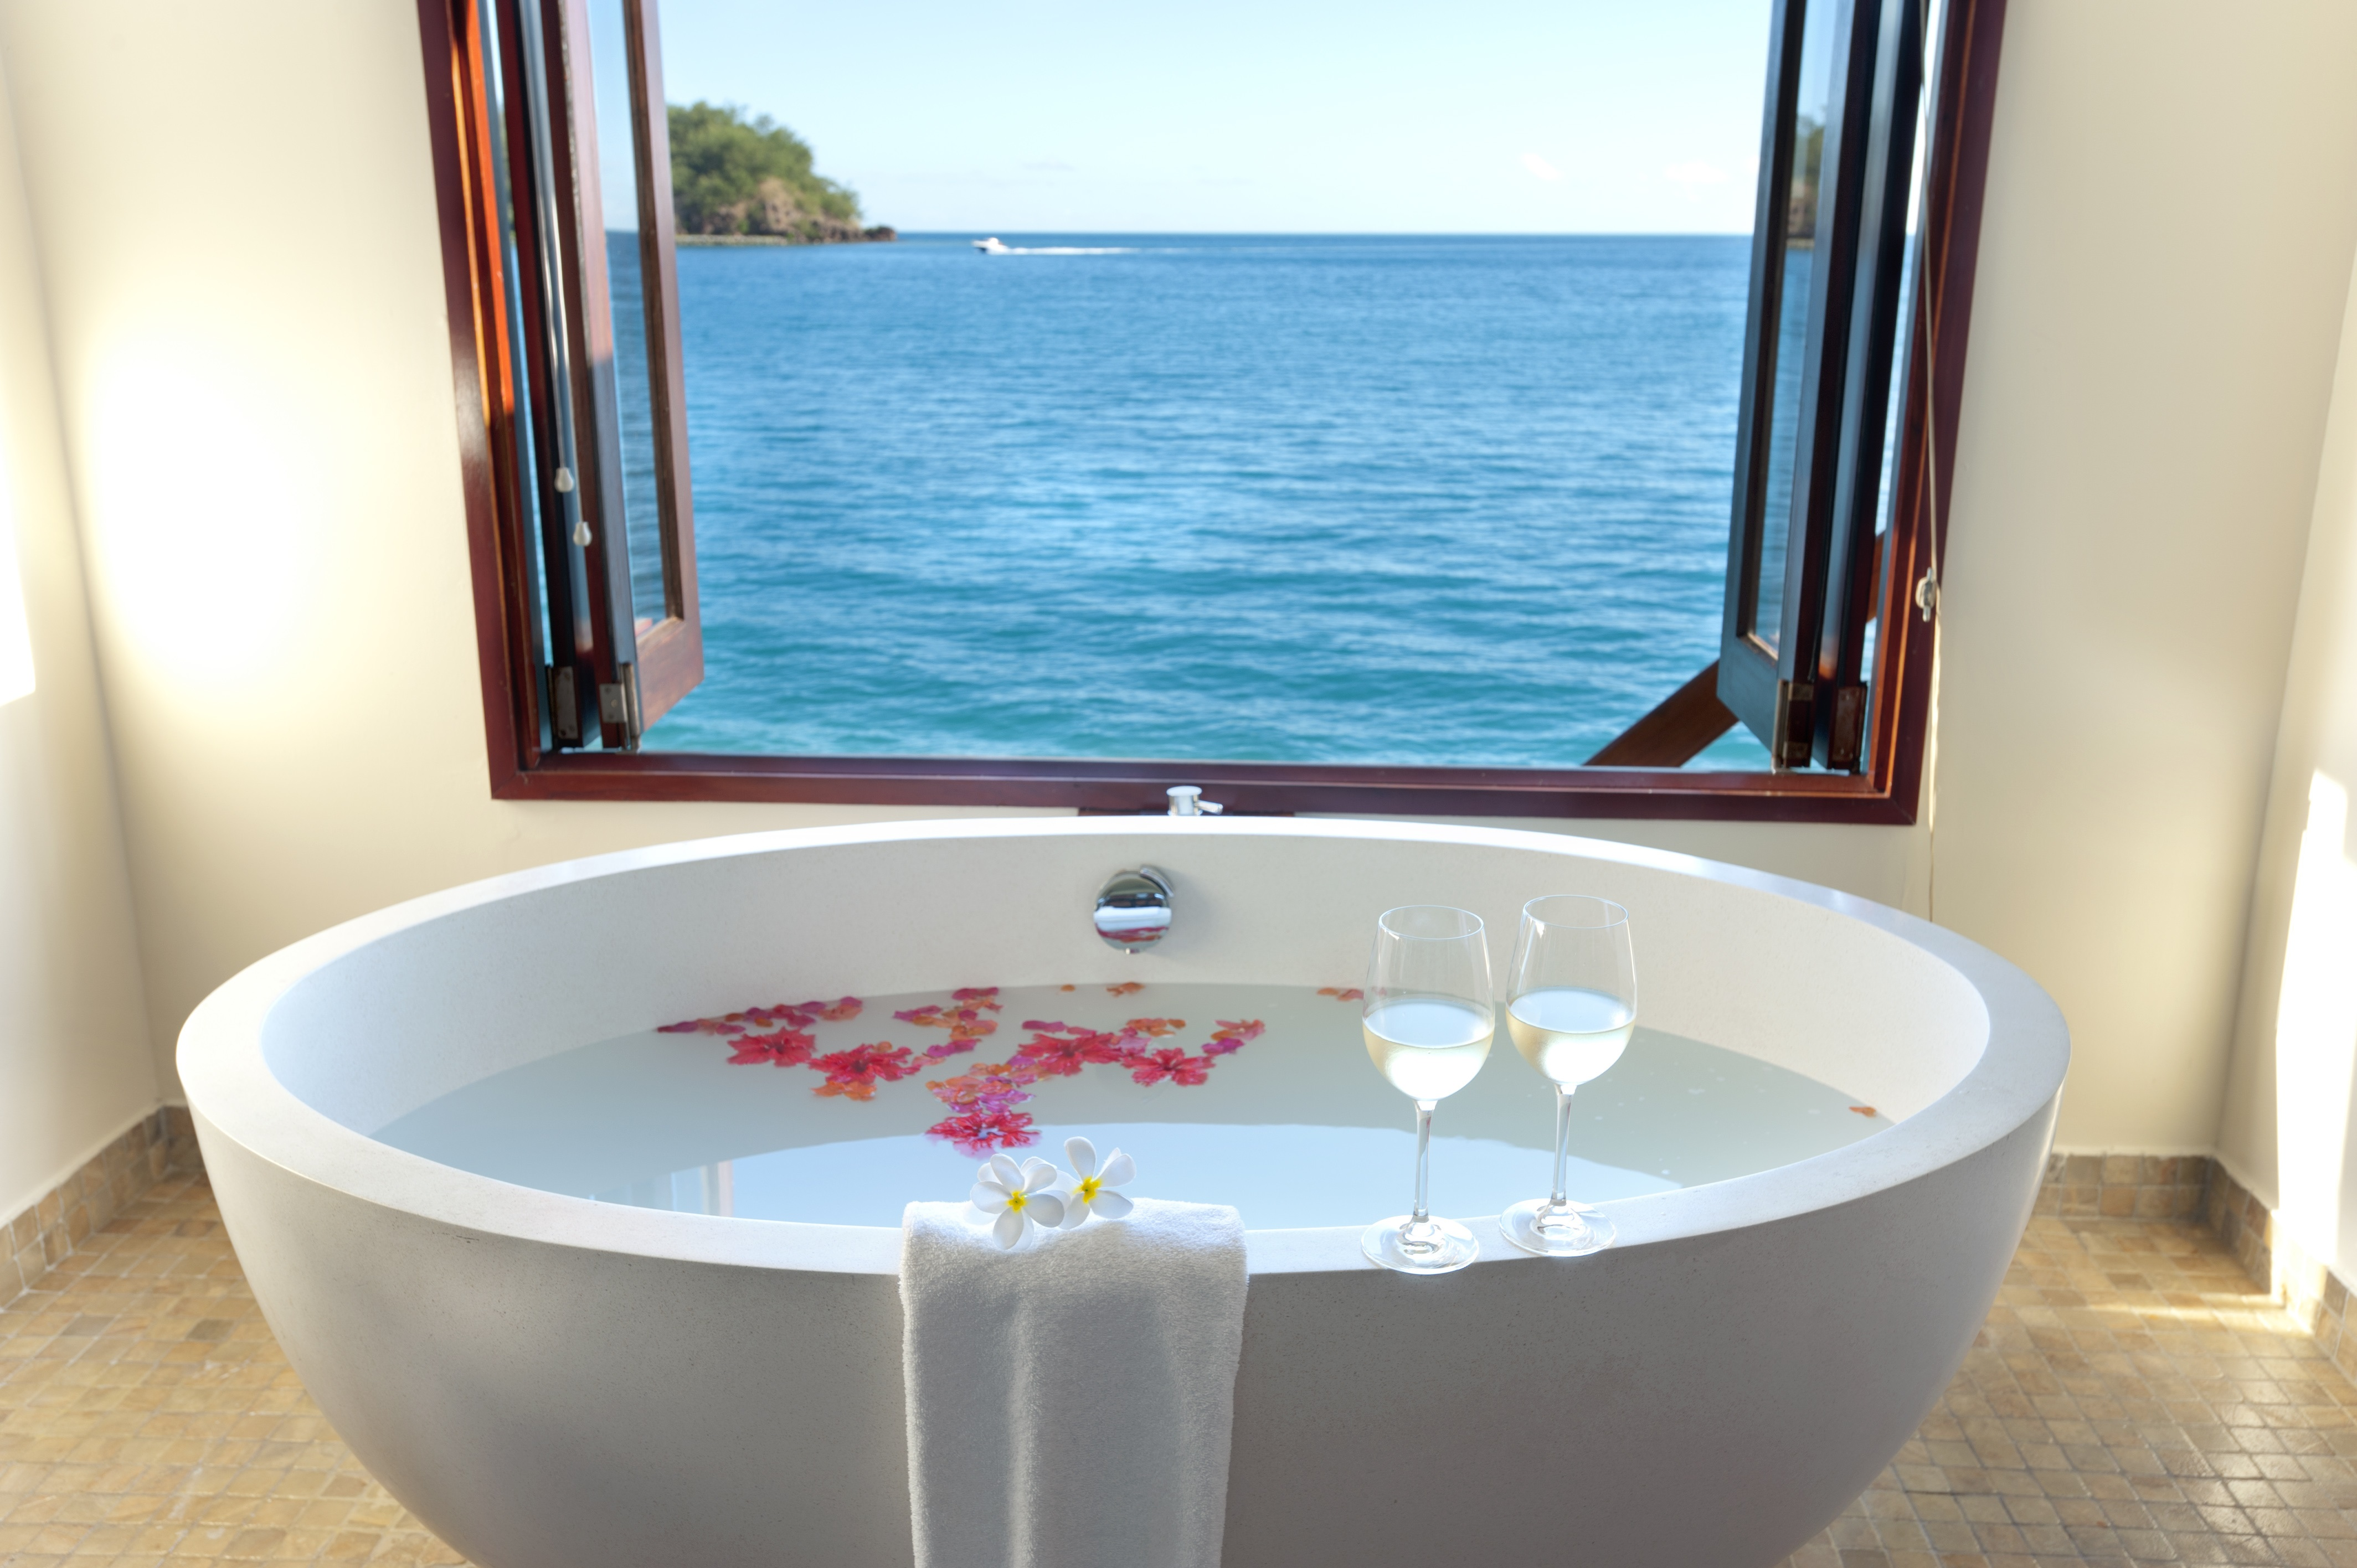 The World S 8 Top Hotel Soaking Tubs En Route Us News